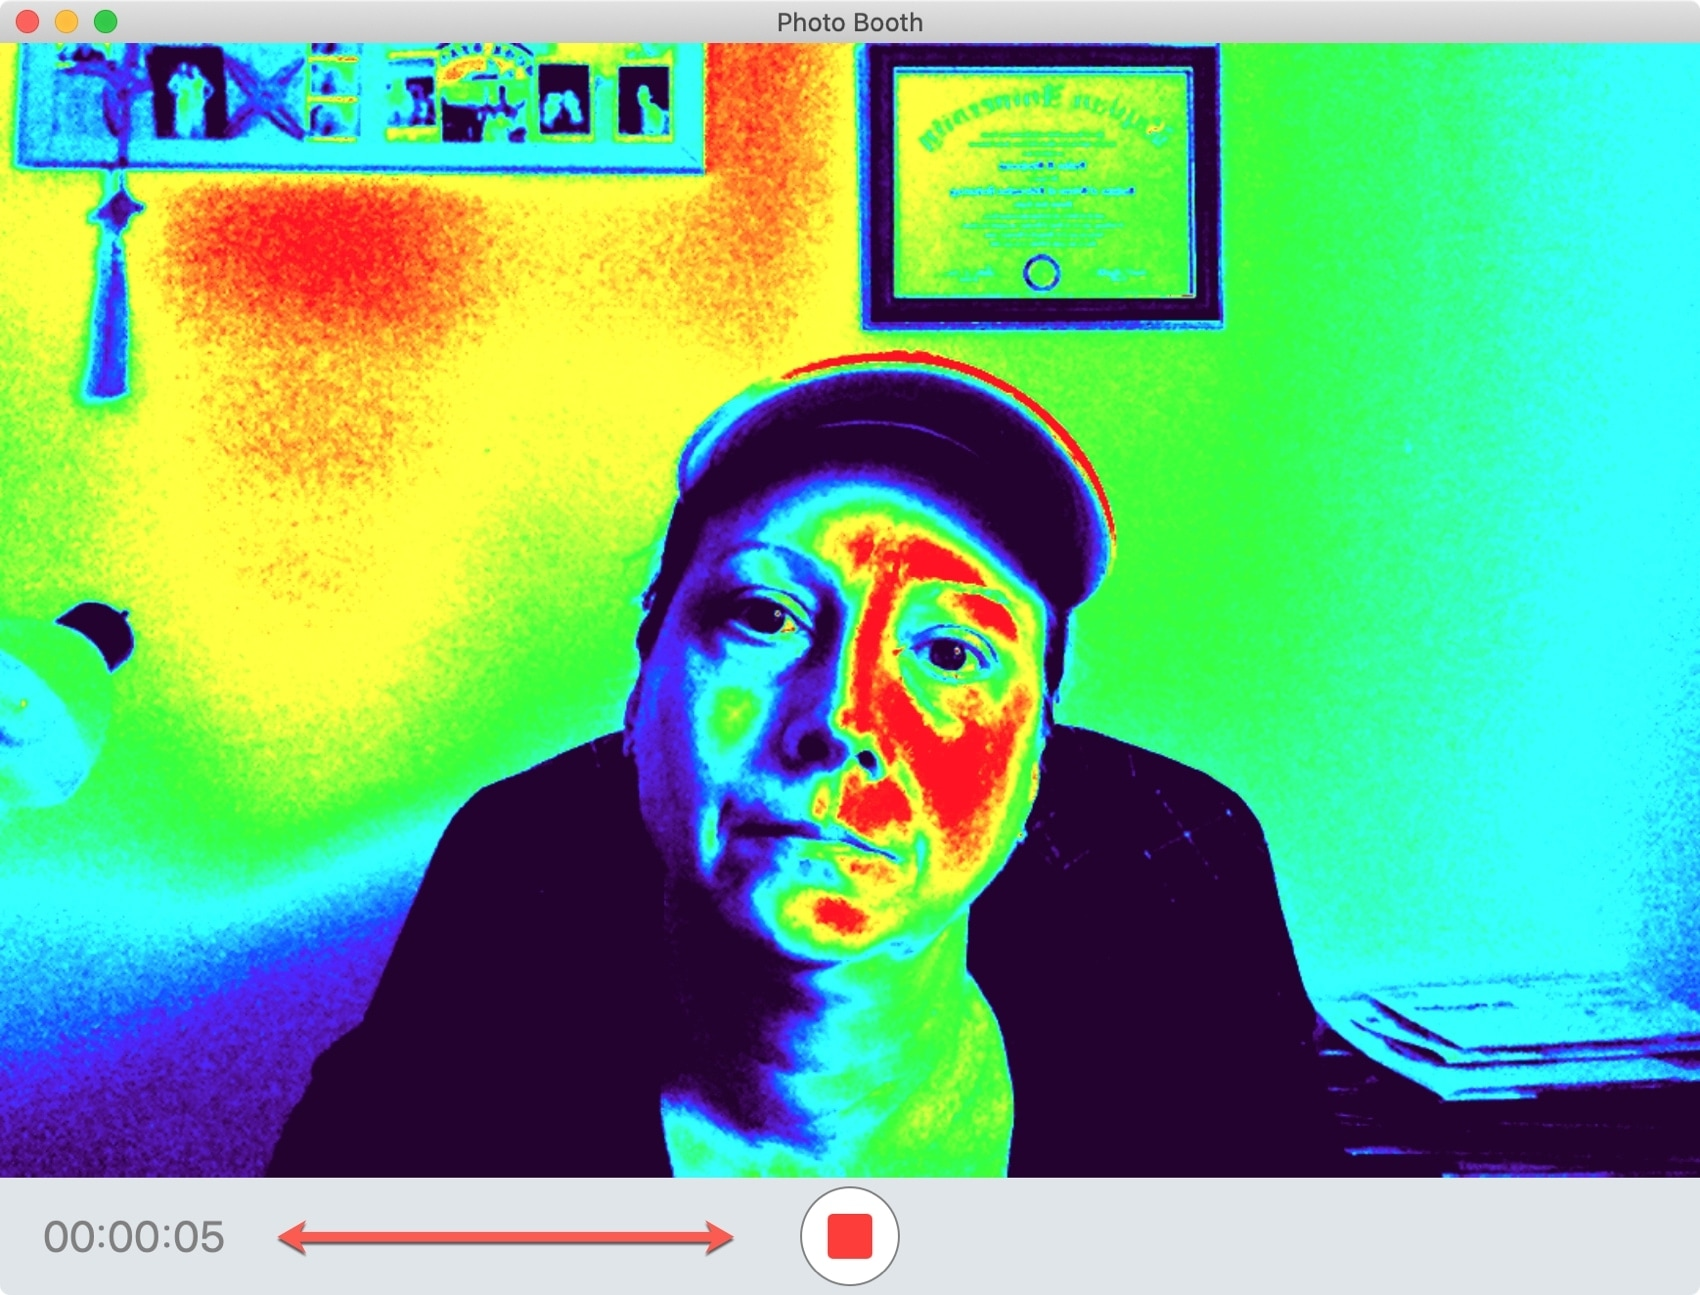 Photo Booth Video on Mac